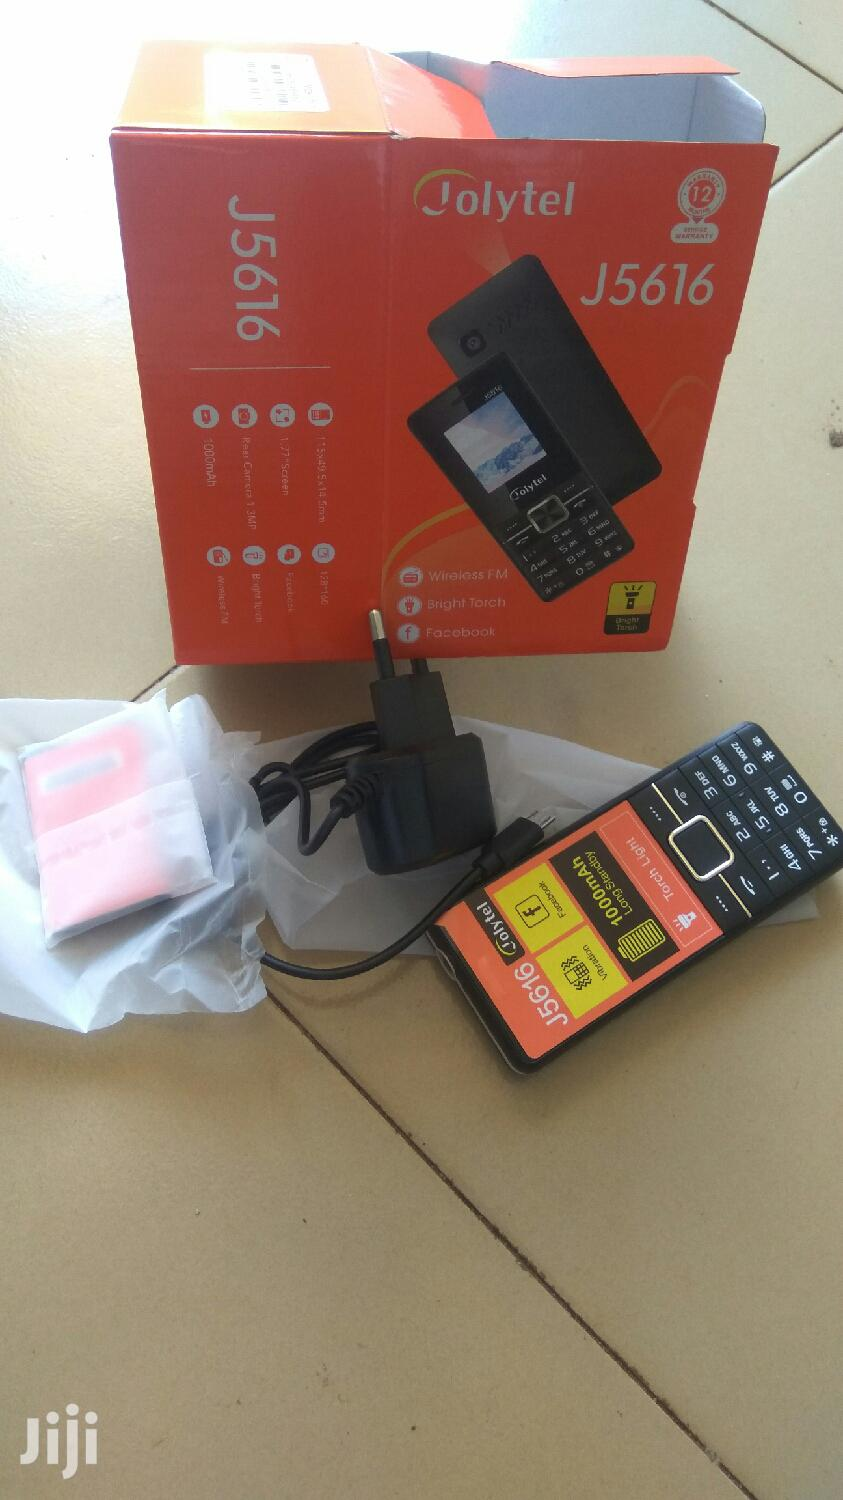 Archive: New Mobile Phone Black